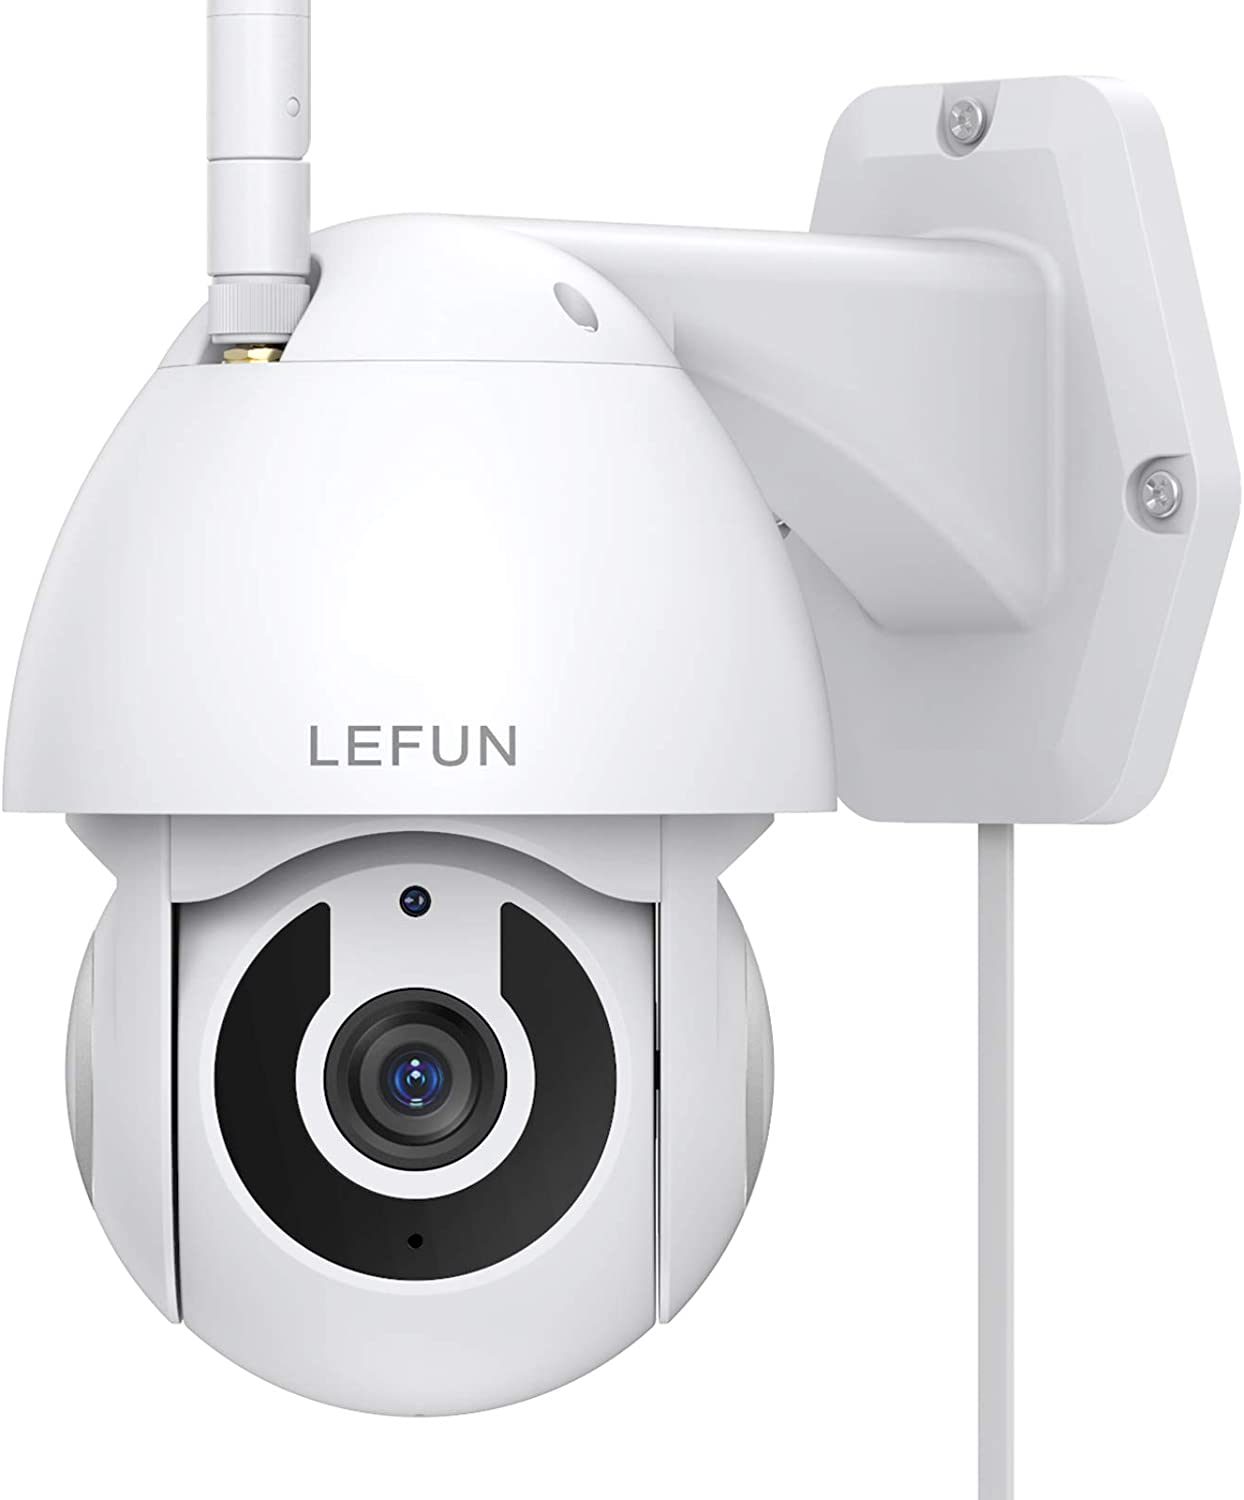 Security Camera Outdoor, Lefun Pan/Tilt 2.4G WiFi Home Surveillance Camera, 1080P IP Camera with Waterproof Night Vision 2-Way Audio Motion Detection Cloud Service, Compatible with Alexa